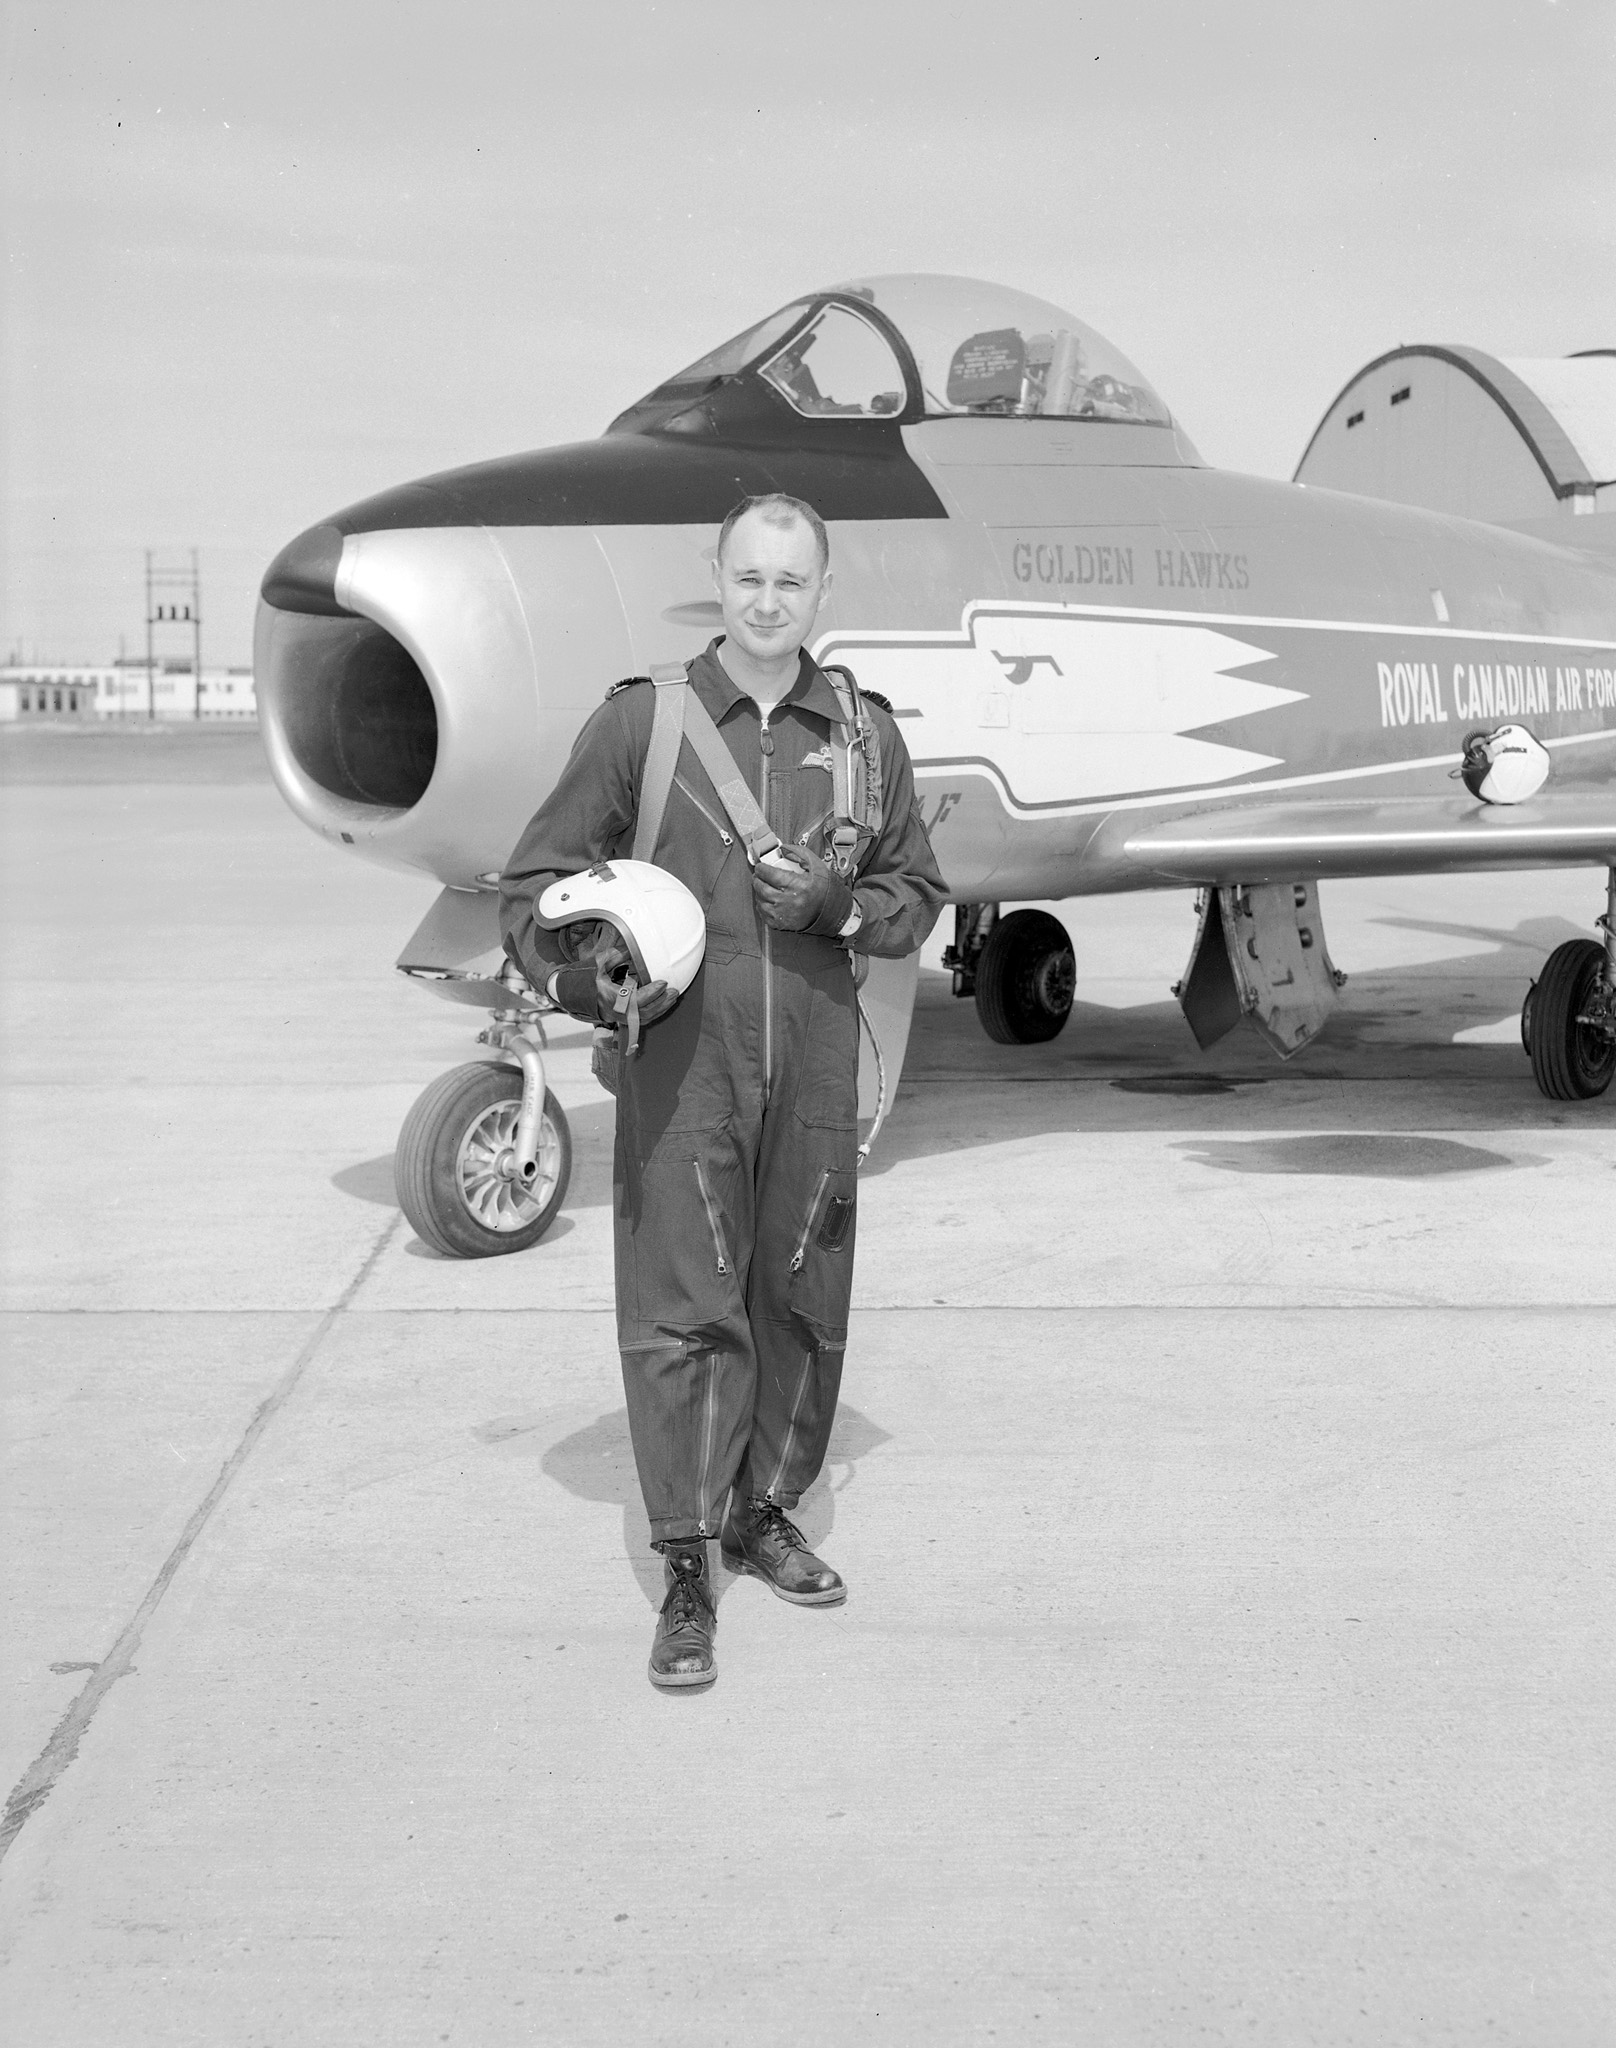 Le commandant d'aviation Fern Villeneuve, chef des Golden Hawks, se fait prendre en photo devant un appareil F 36 Sabre après un exercice. PHOTO : Archives du ministère de la Défense nationale, PL 64157